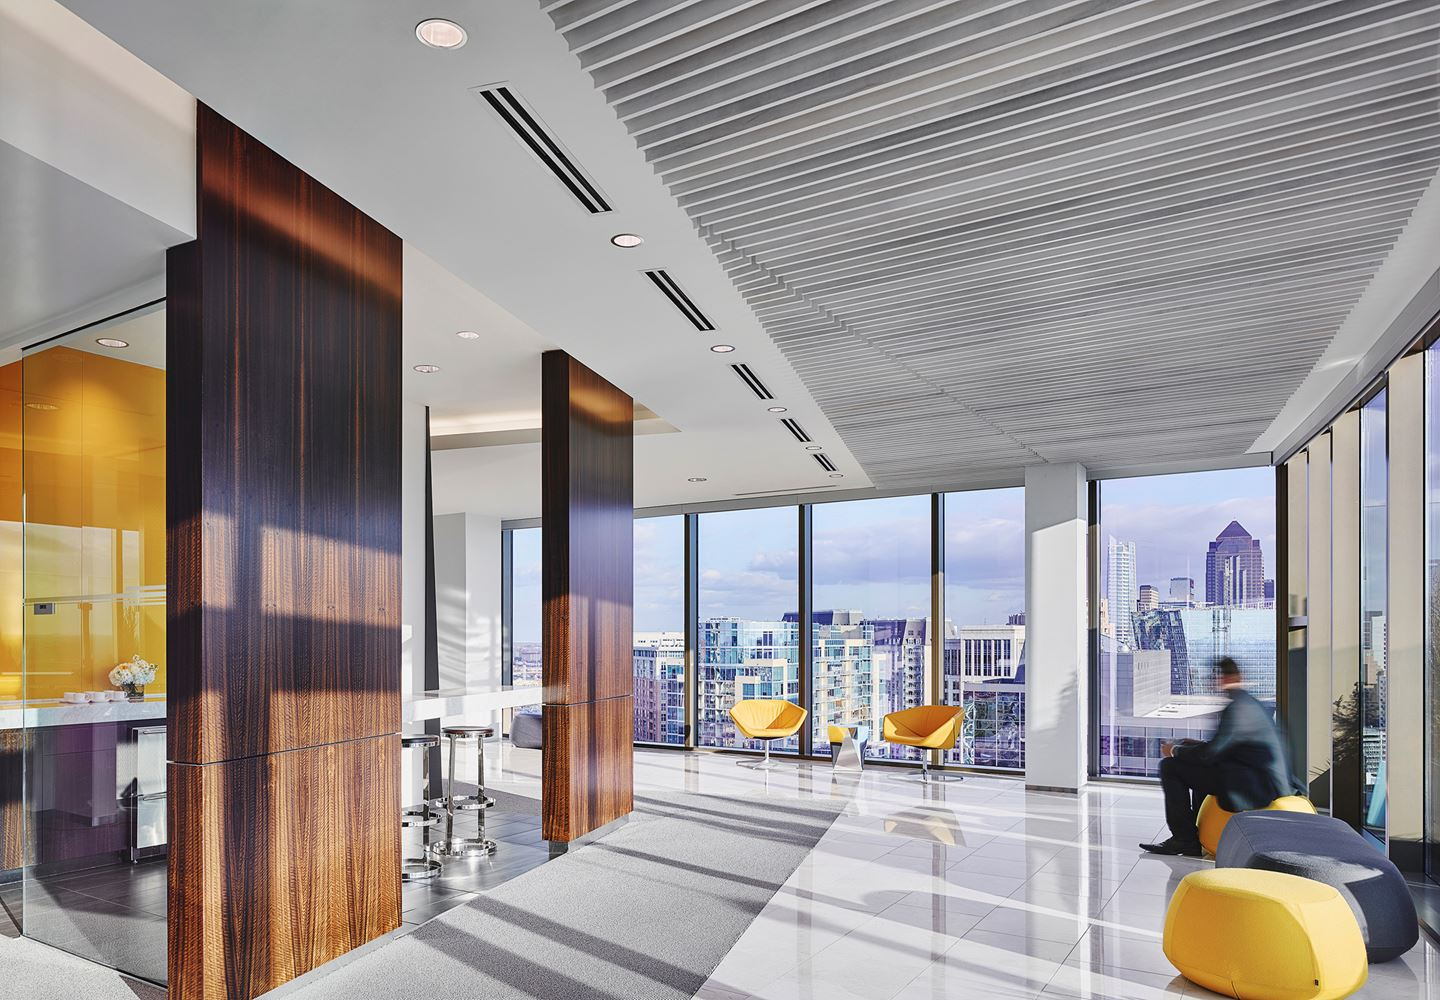 Attirant Polsinelliu0027s New York Office Juxtaposes Contemporary Materials, Fabrics And  Textures With Classic City Views To Create A Forward Looking Home For One  Of The ...